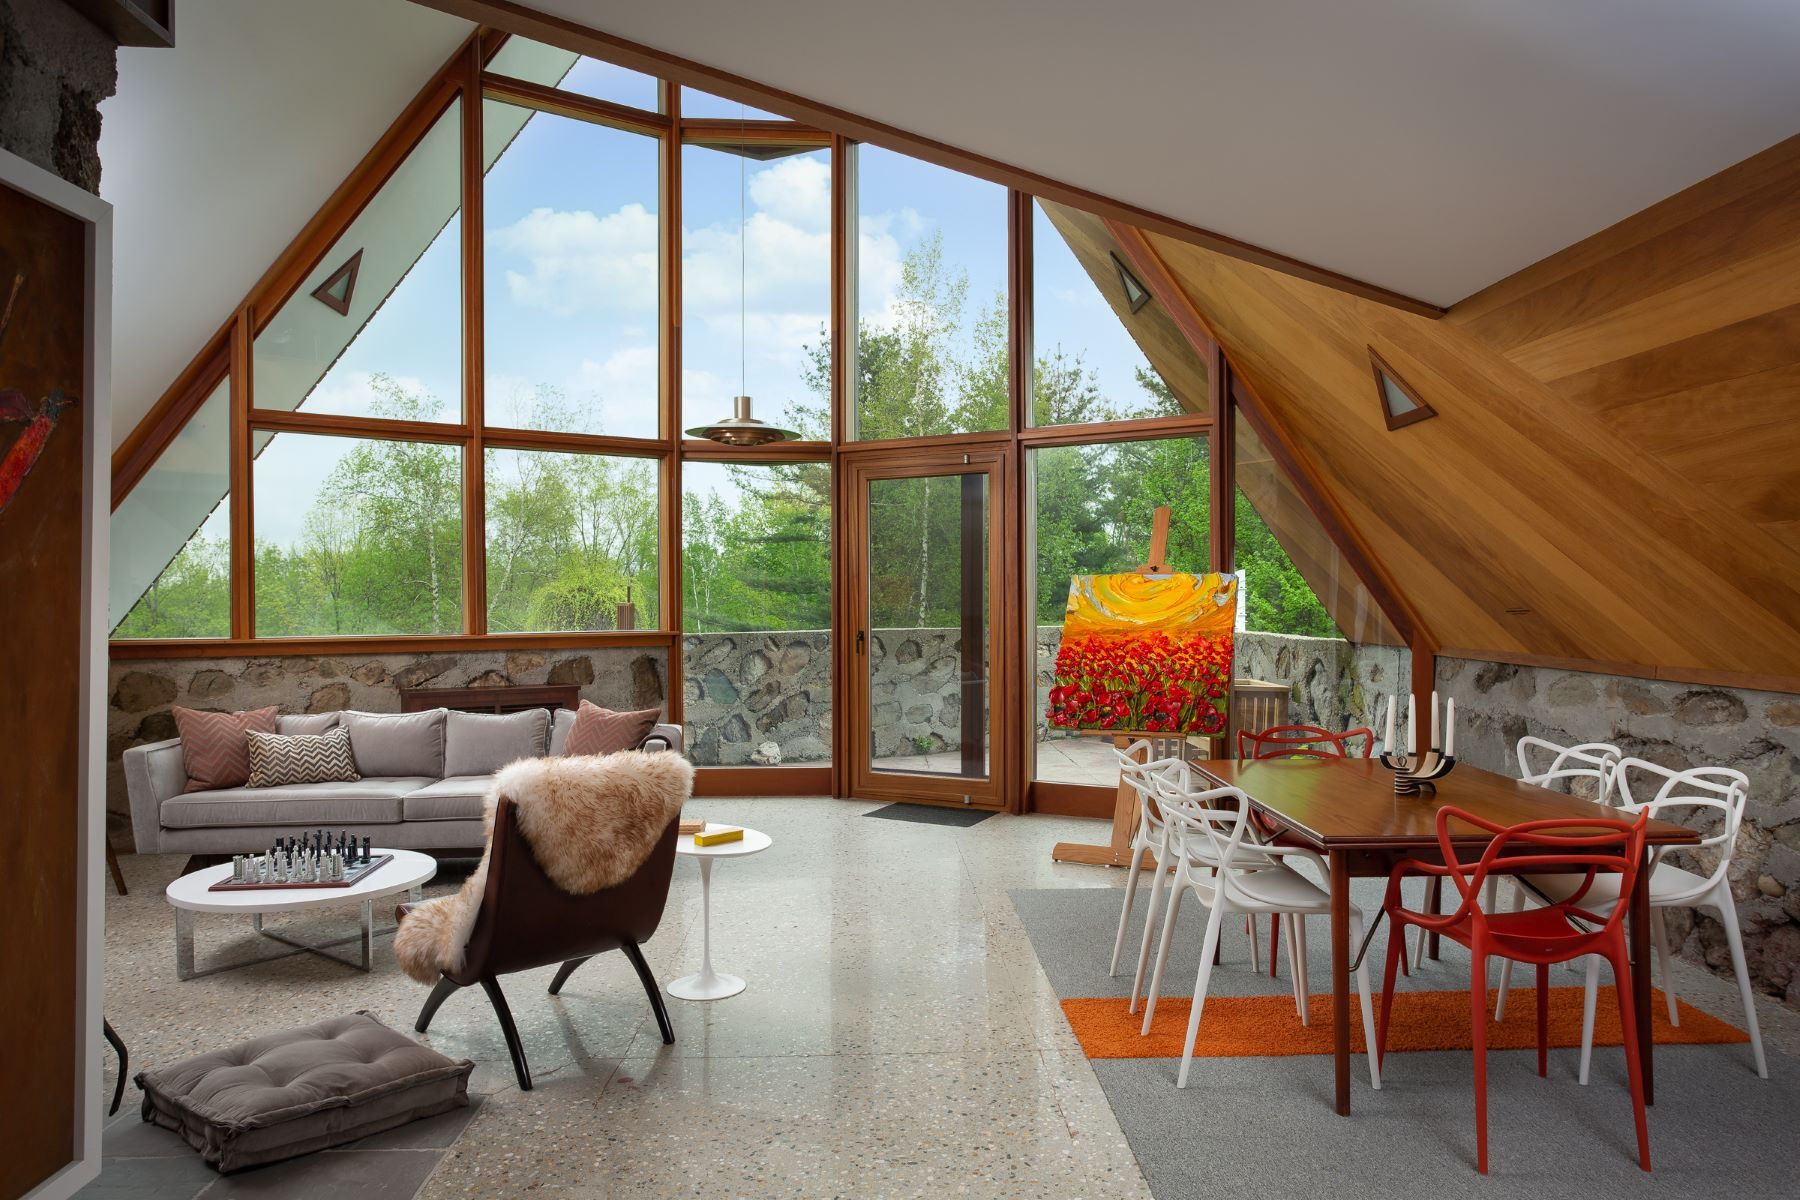 Single Family Homes für Verkauf beim Magnificent Modernist Retreat Designed by Two Colleagues of Frank Lloyd Wright 121 Top Of Dean Hill Rd, Canaan, New York 12029 Vereinigte Staaten